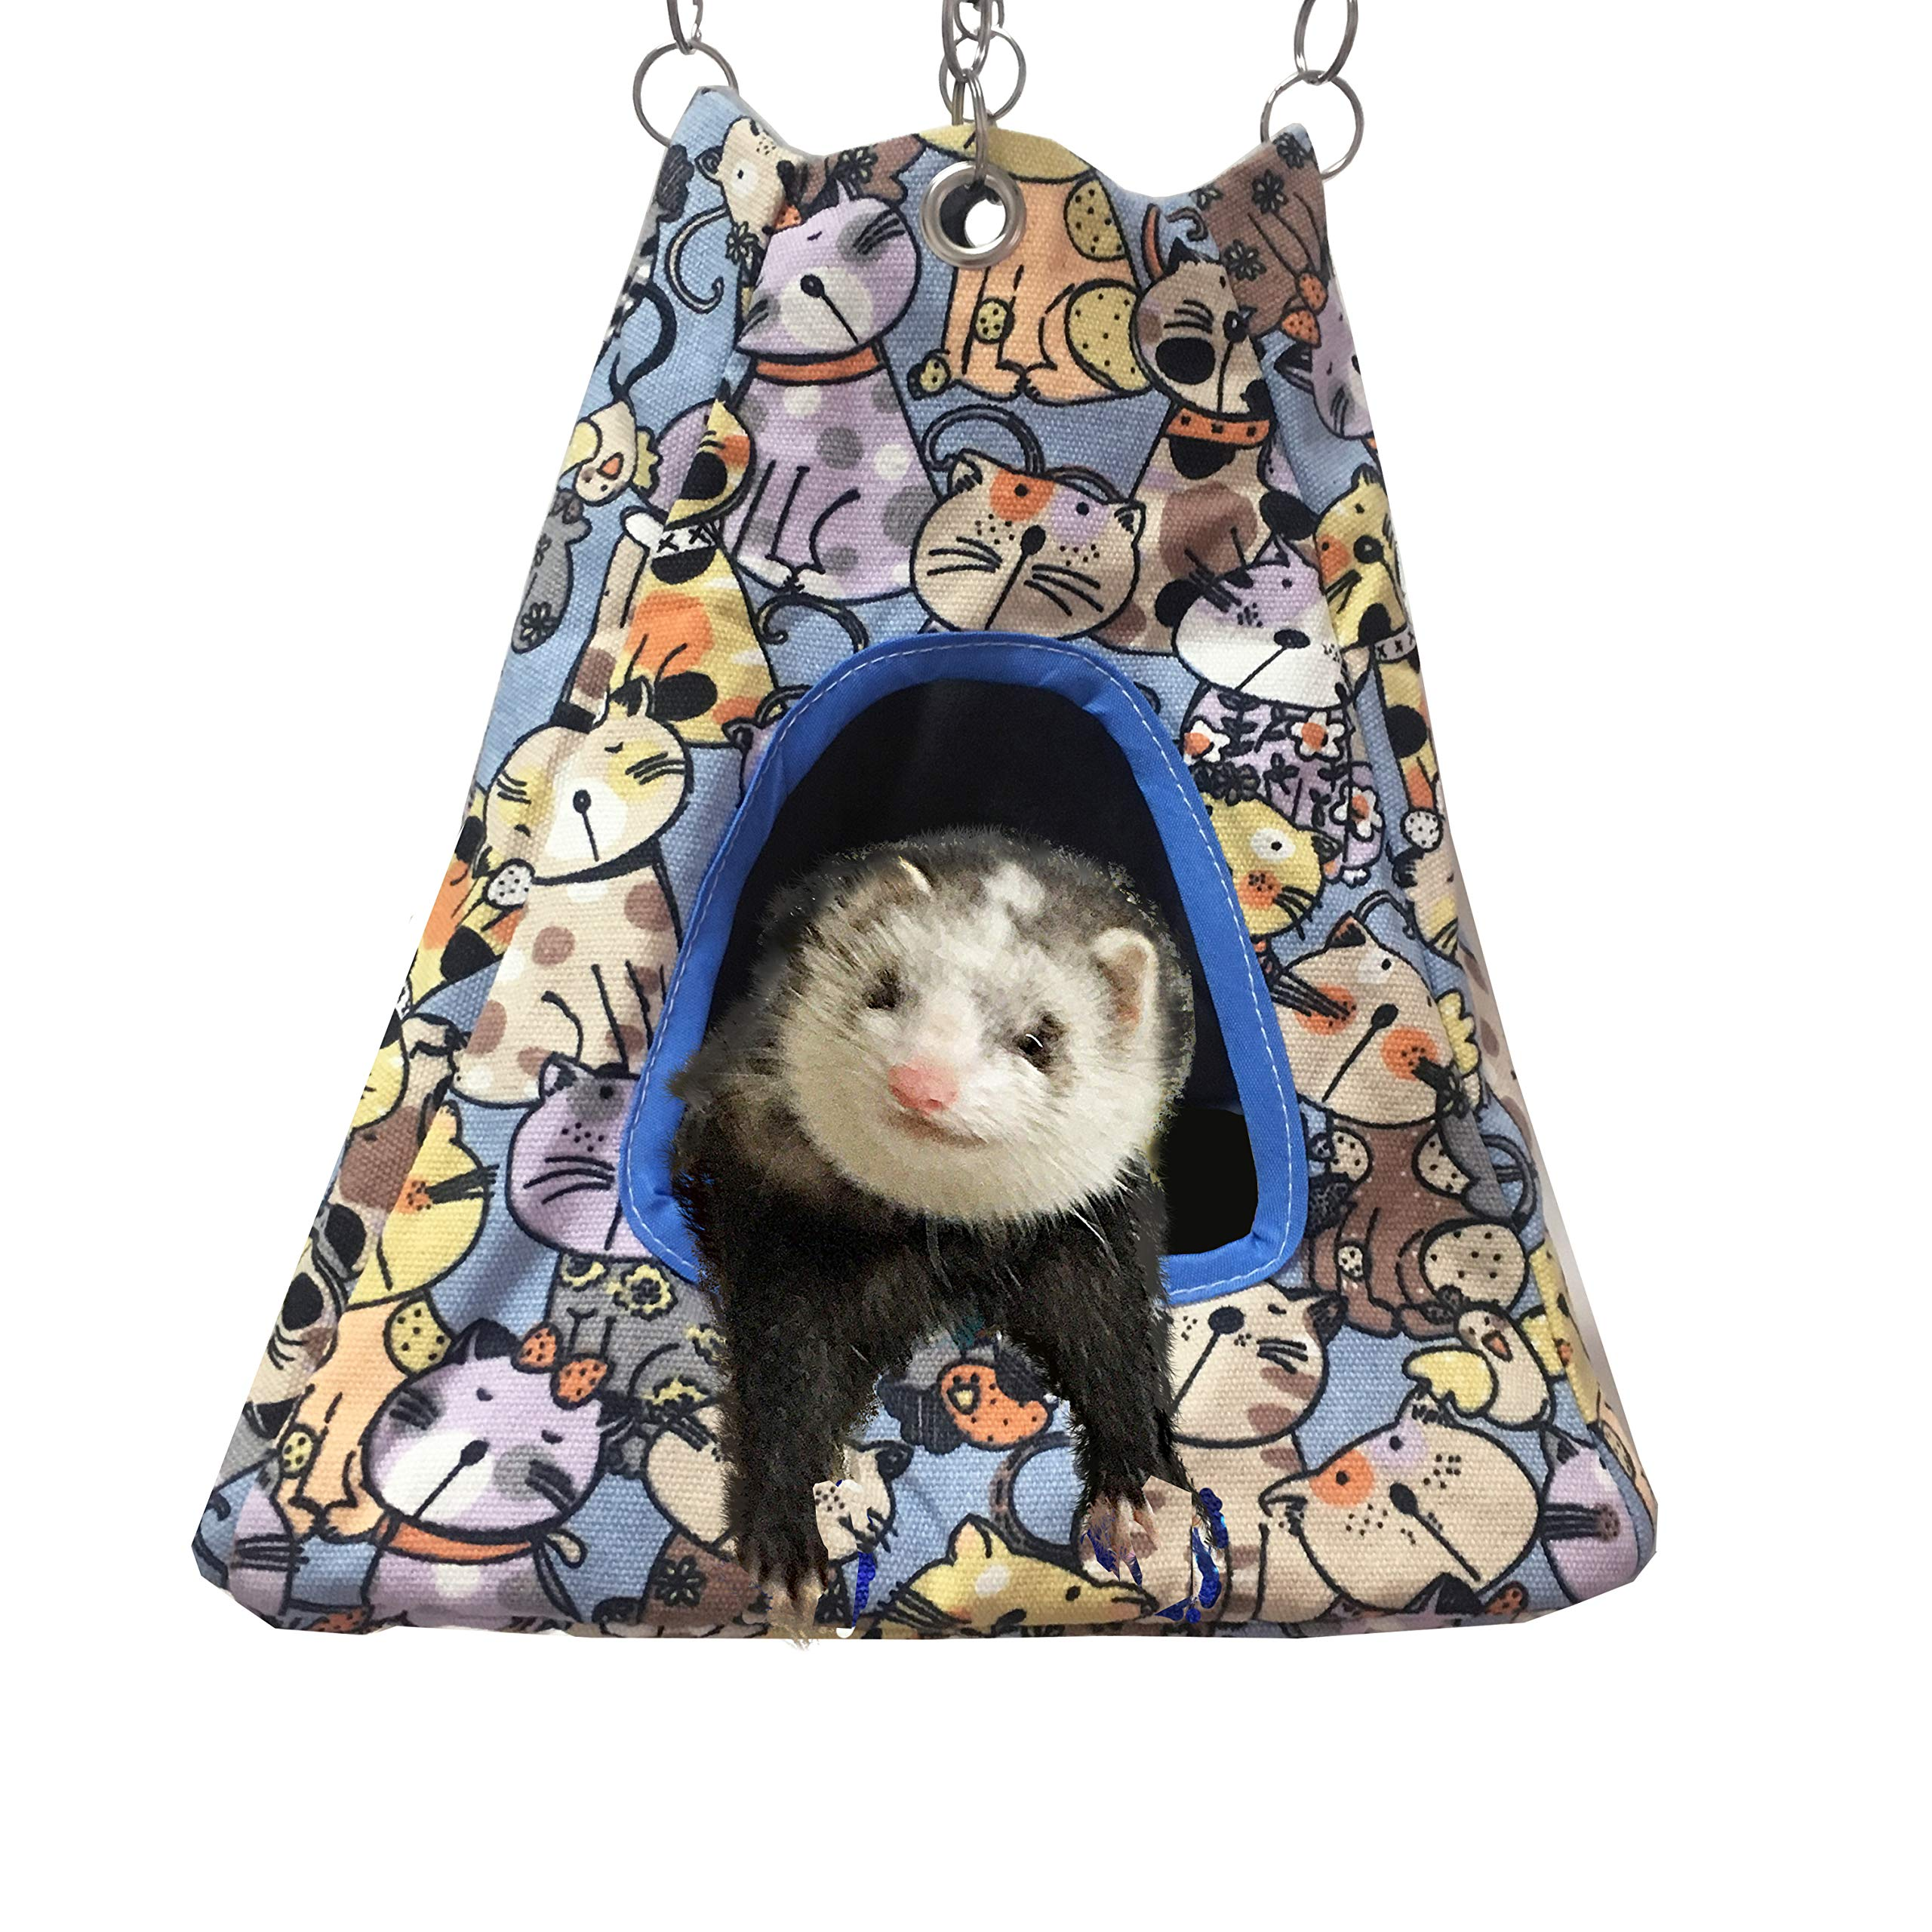 Blue Warm Hanging Bed for Ferret//Squirrels//Chinchillas//Hamster//Other Small Animals MQUPIN Double Layer Pet Hammock Bed